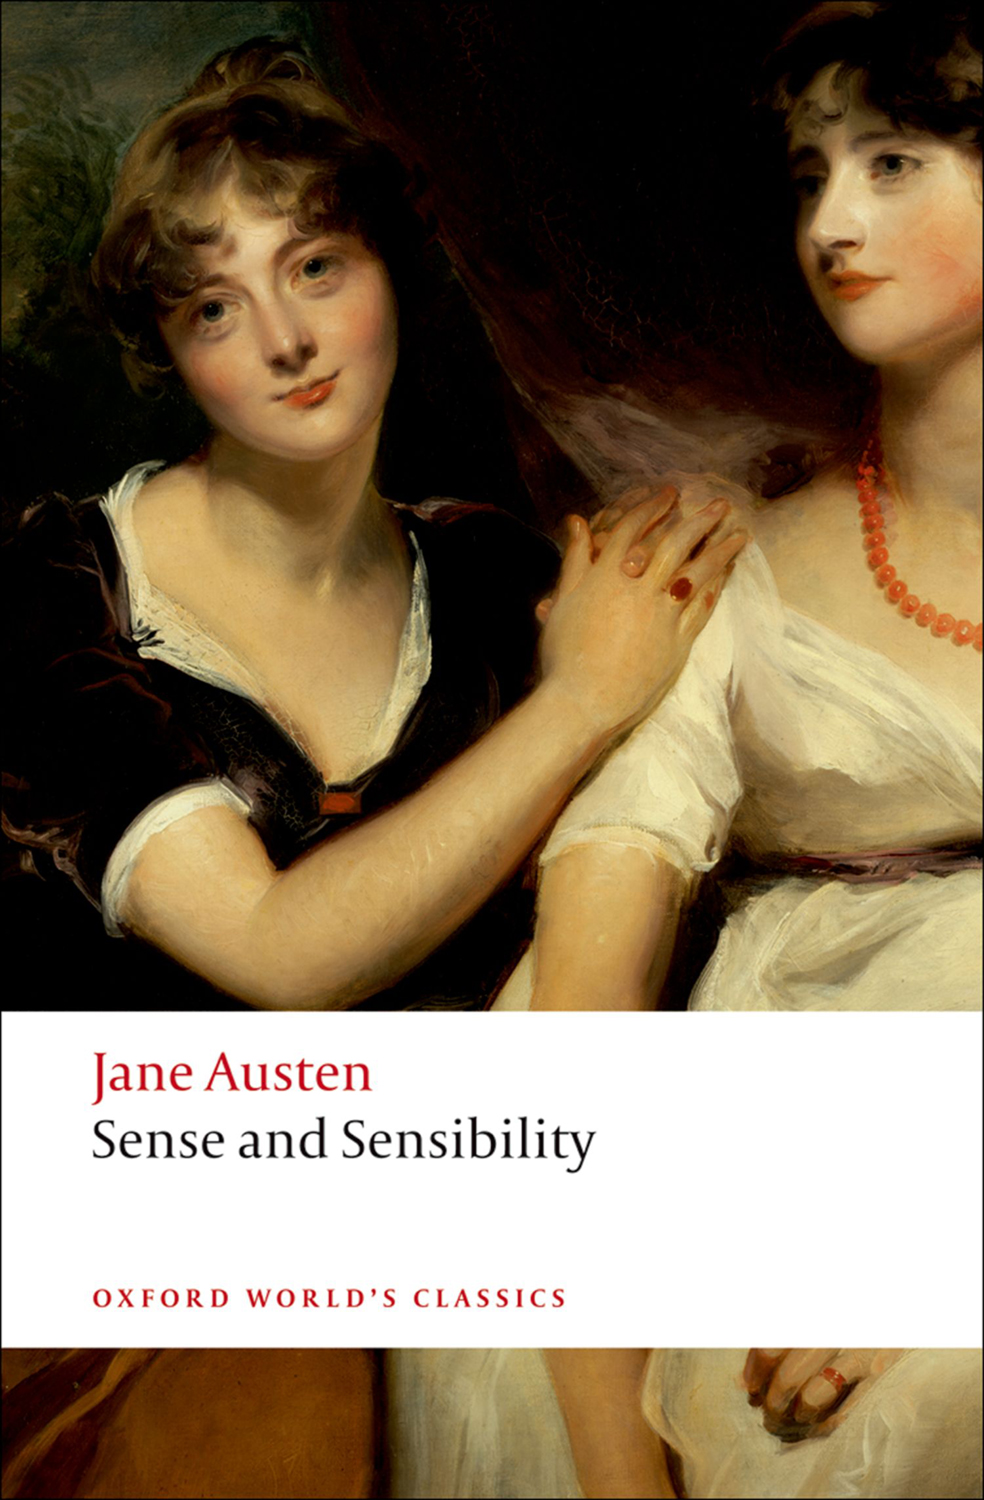 an analysis of the characters of elinor and marianne in sense and sensibility by jane austen Sense and sensibility summary sense and sensibility achieved its publication in the year 1811 under the author jane austen the book was nothing but a classic but sadly it was later appreciated by a whole different generation.